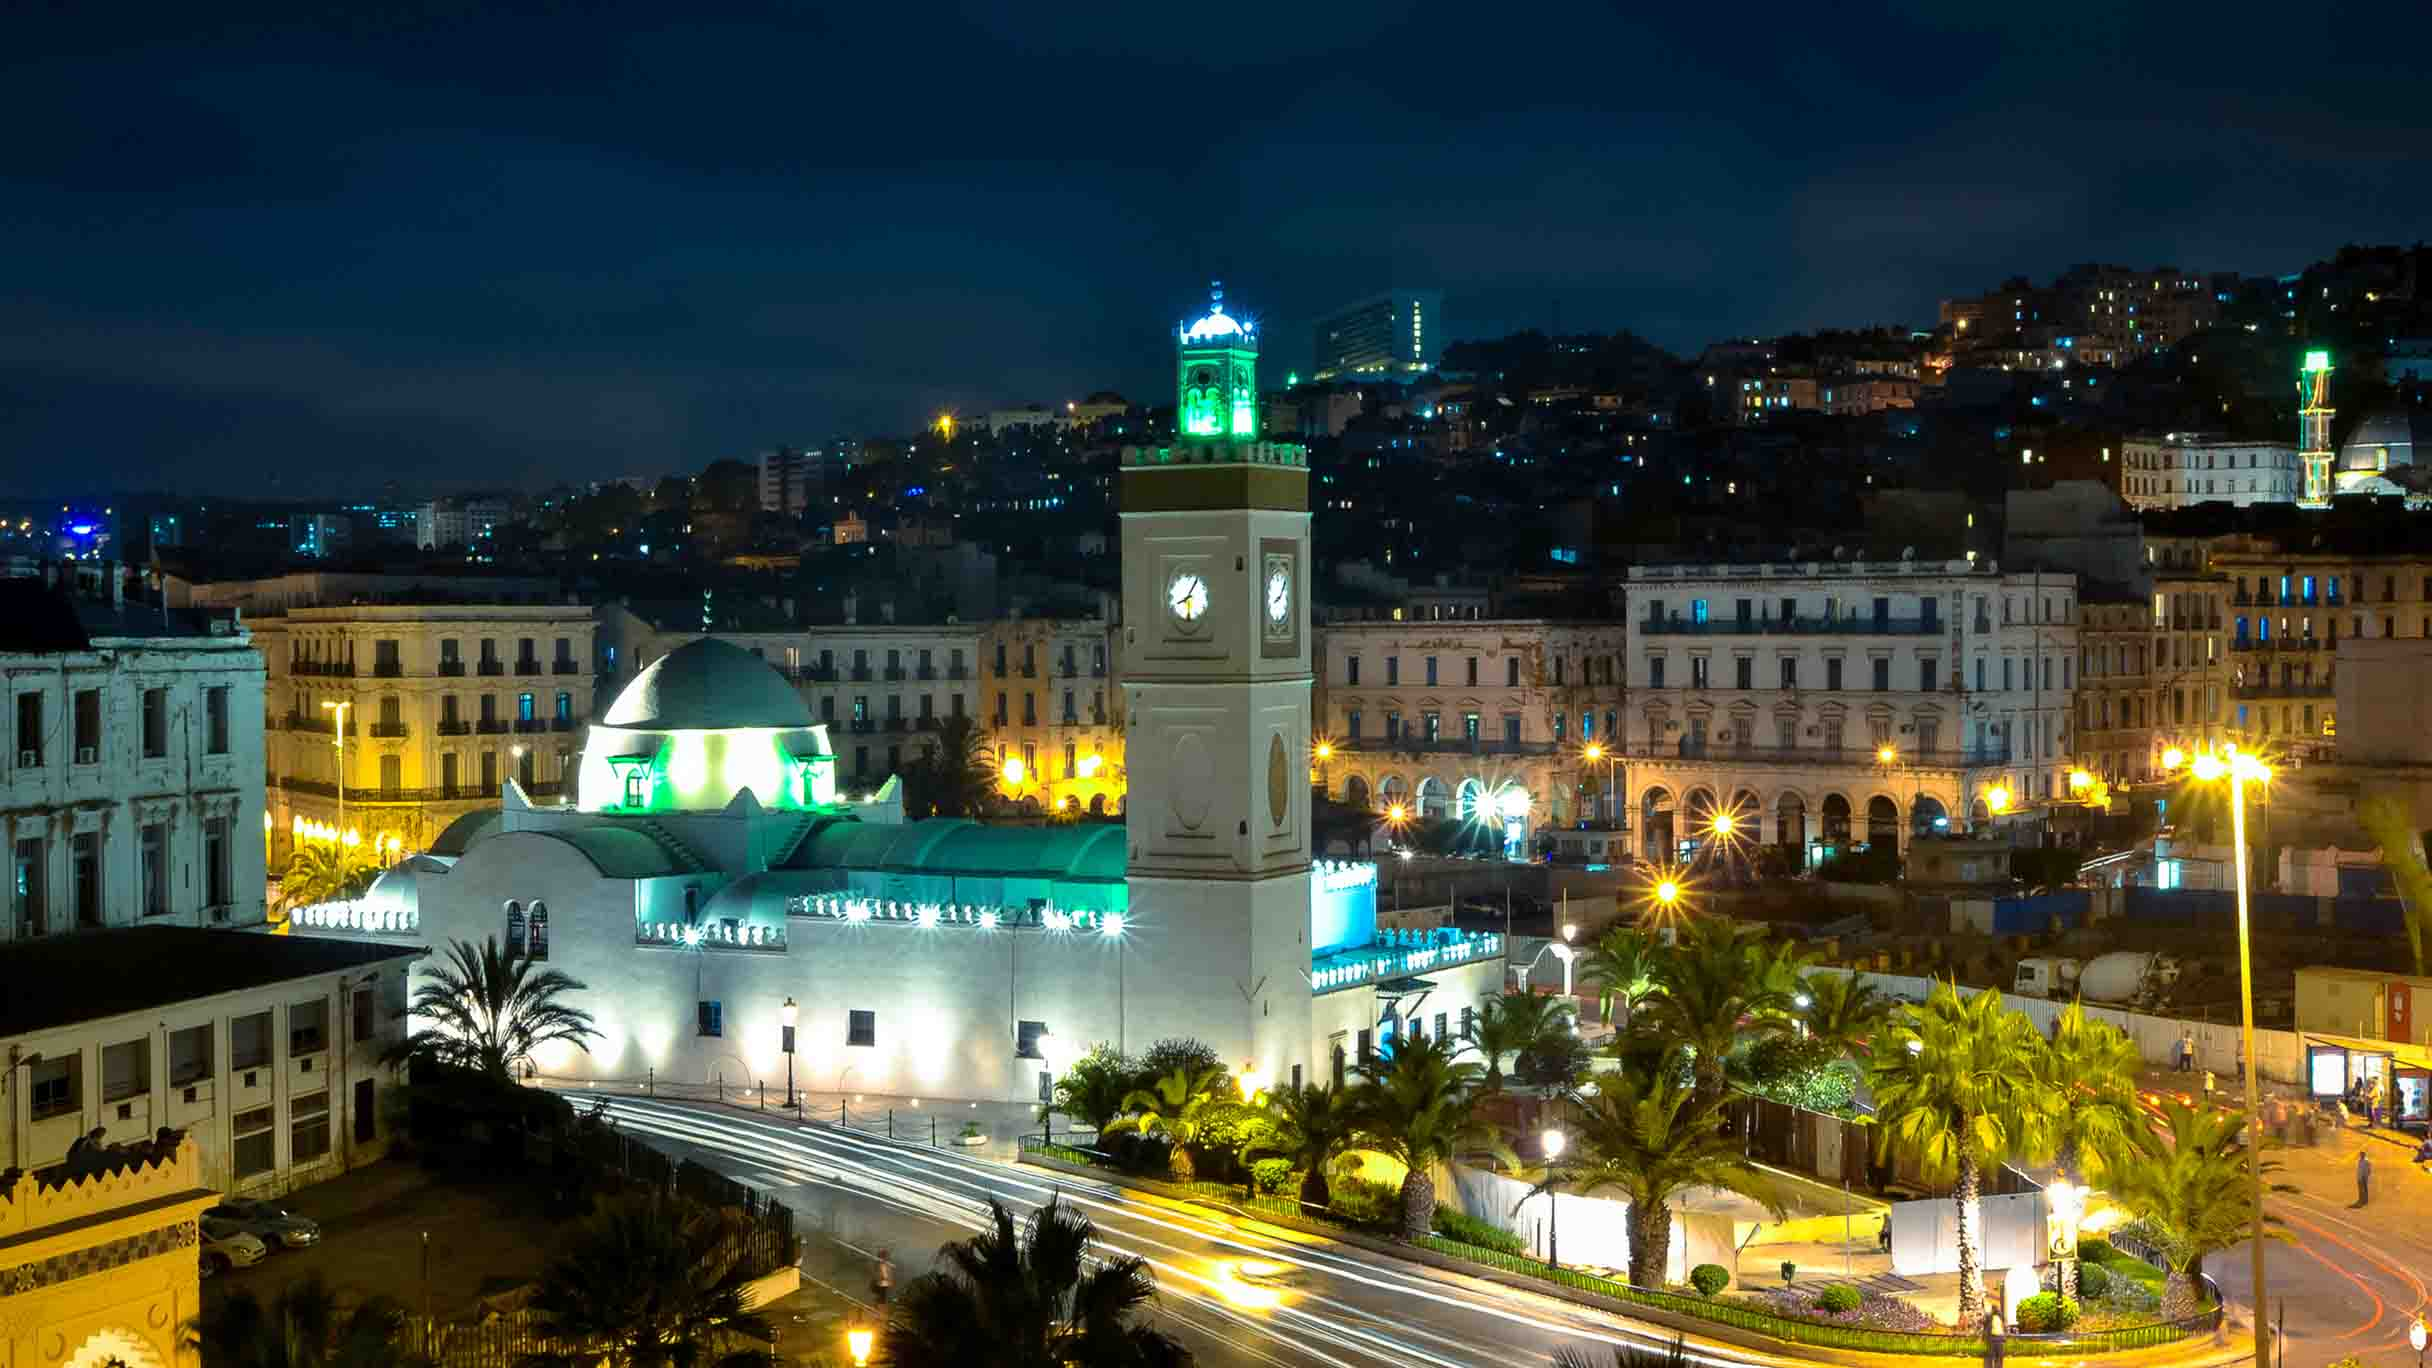 Algerian Electrical Utility Embraces Remote Operations